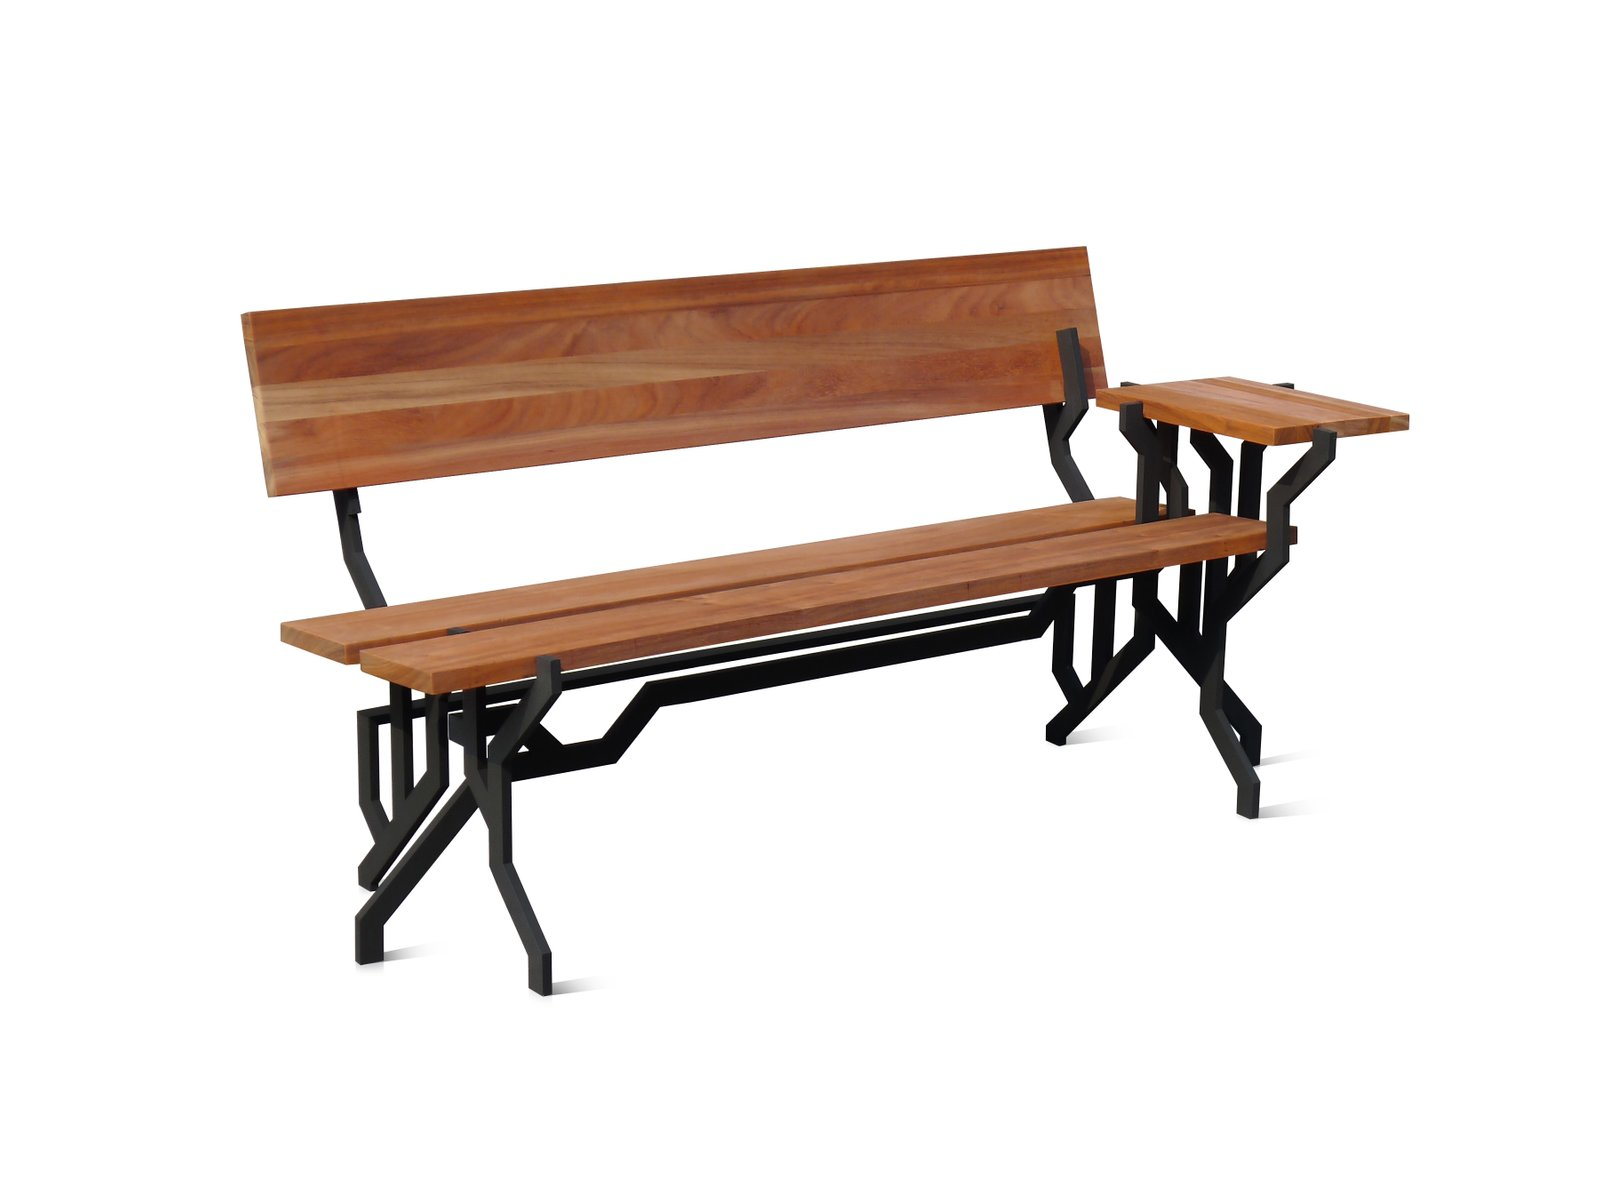 Plant Bench By Kranen Gille For Sale At Pamono